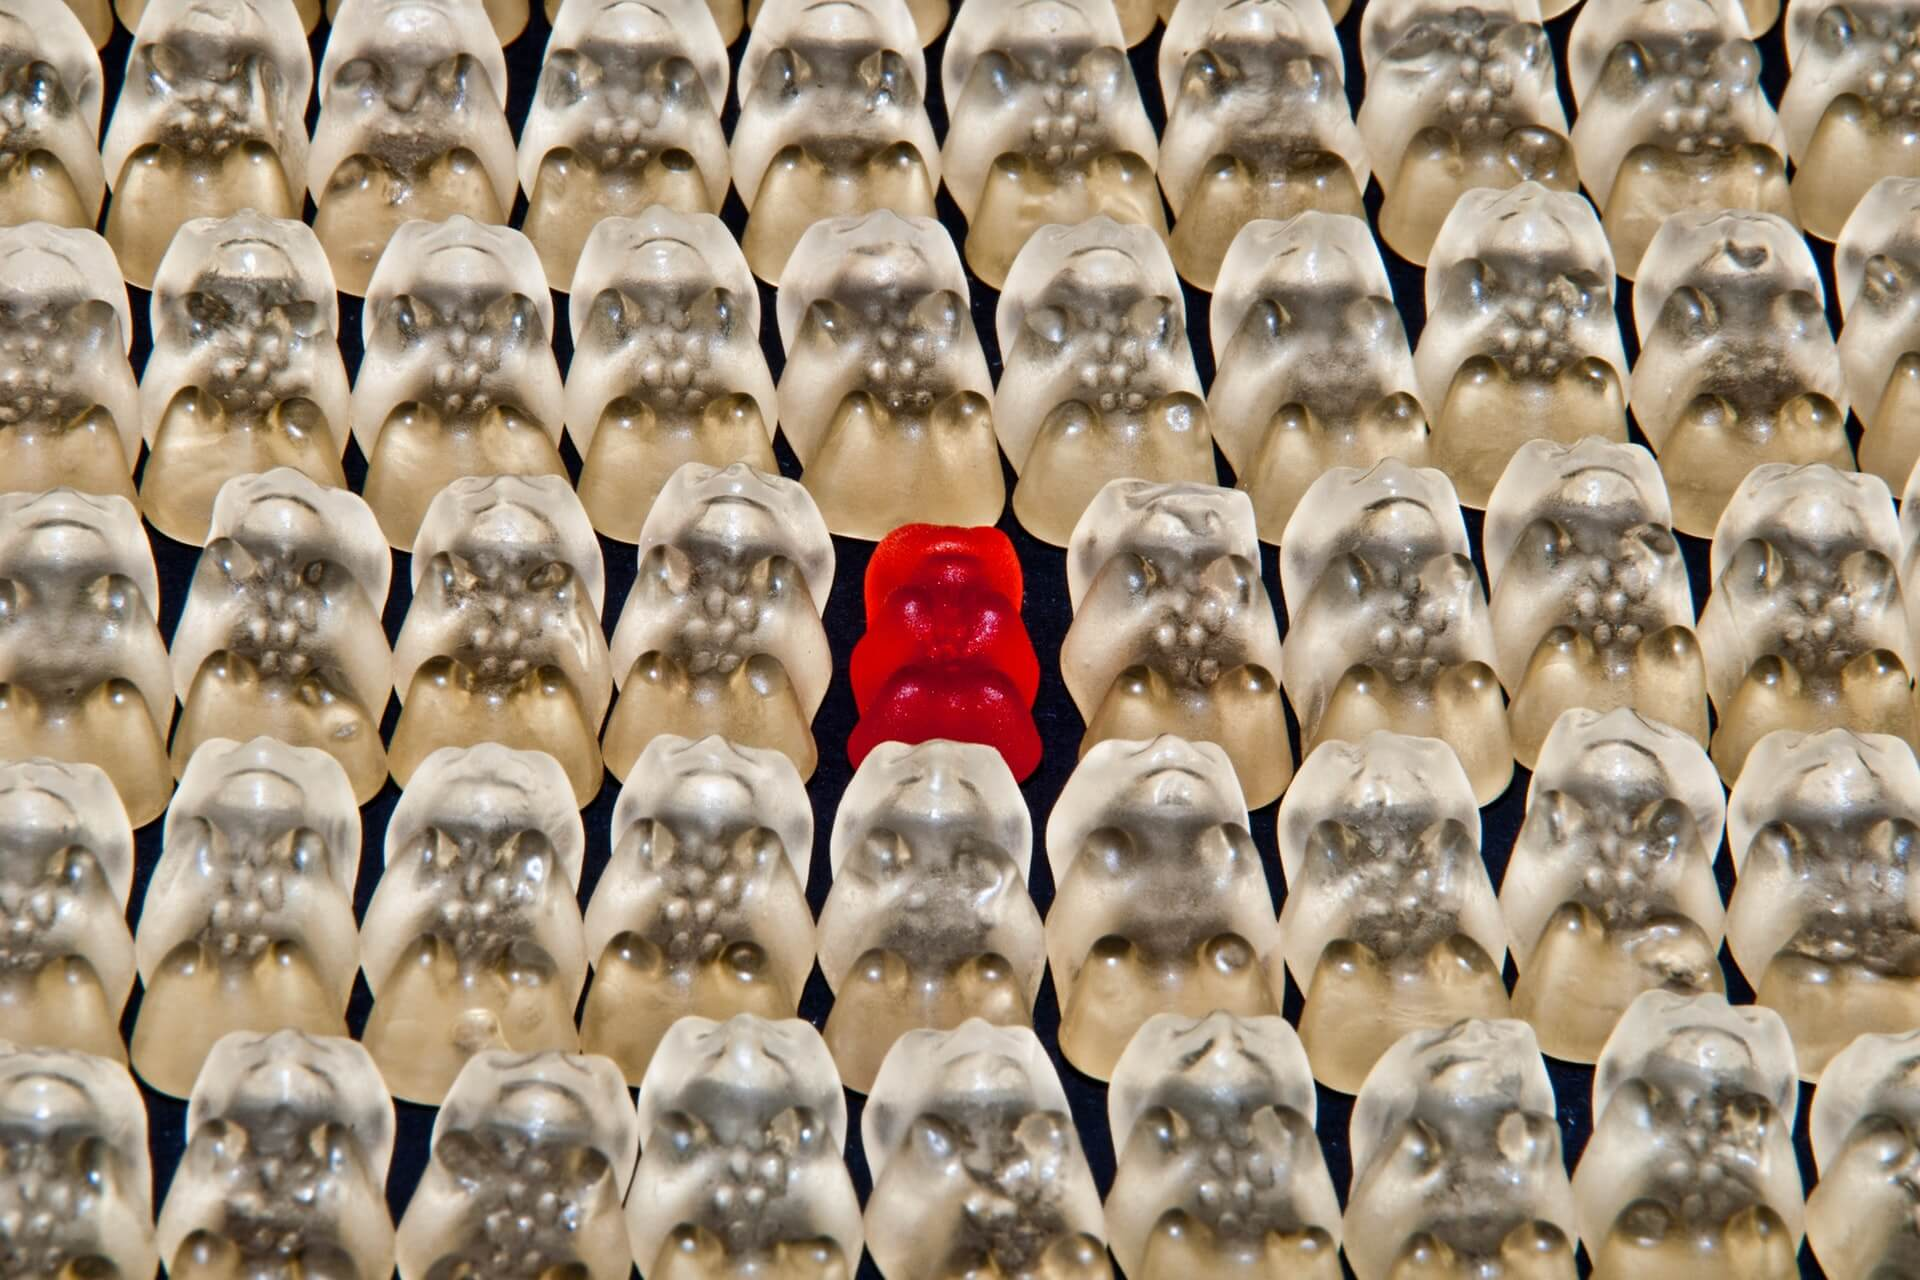 Red gummy bear in a sea of white gummy bears